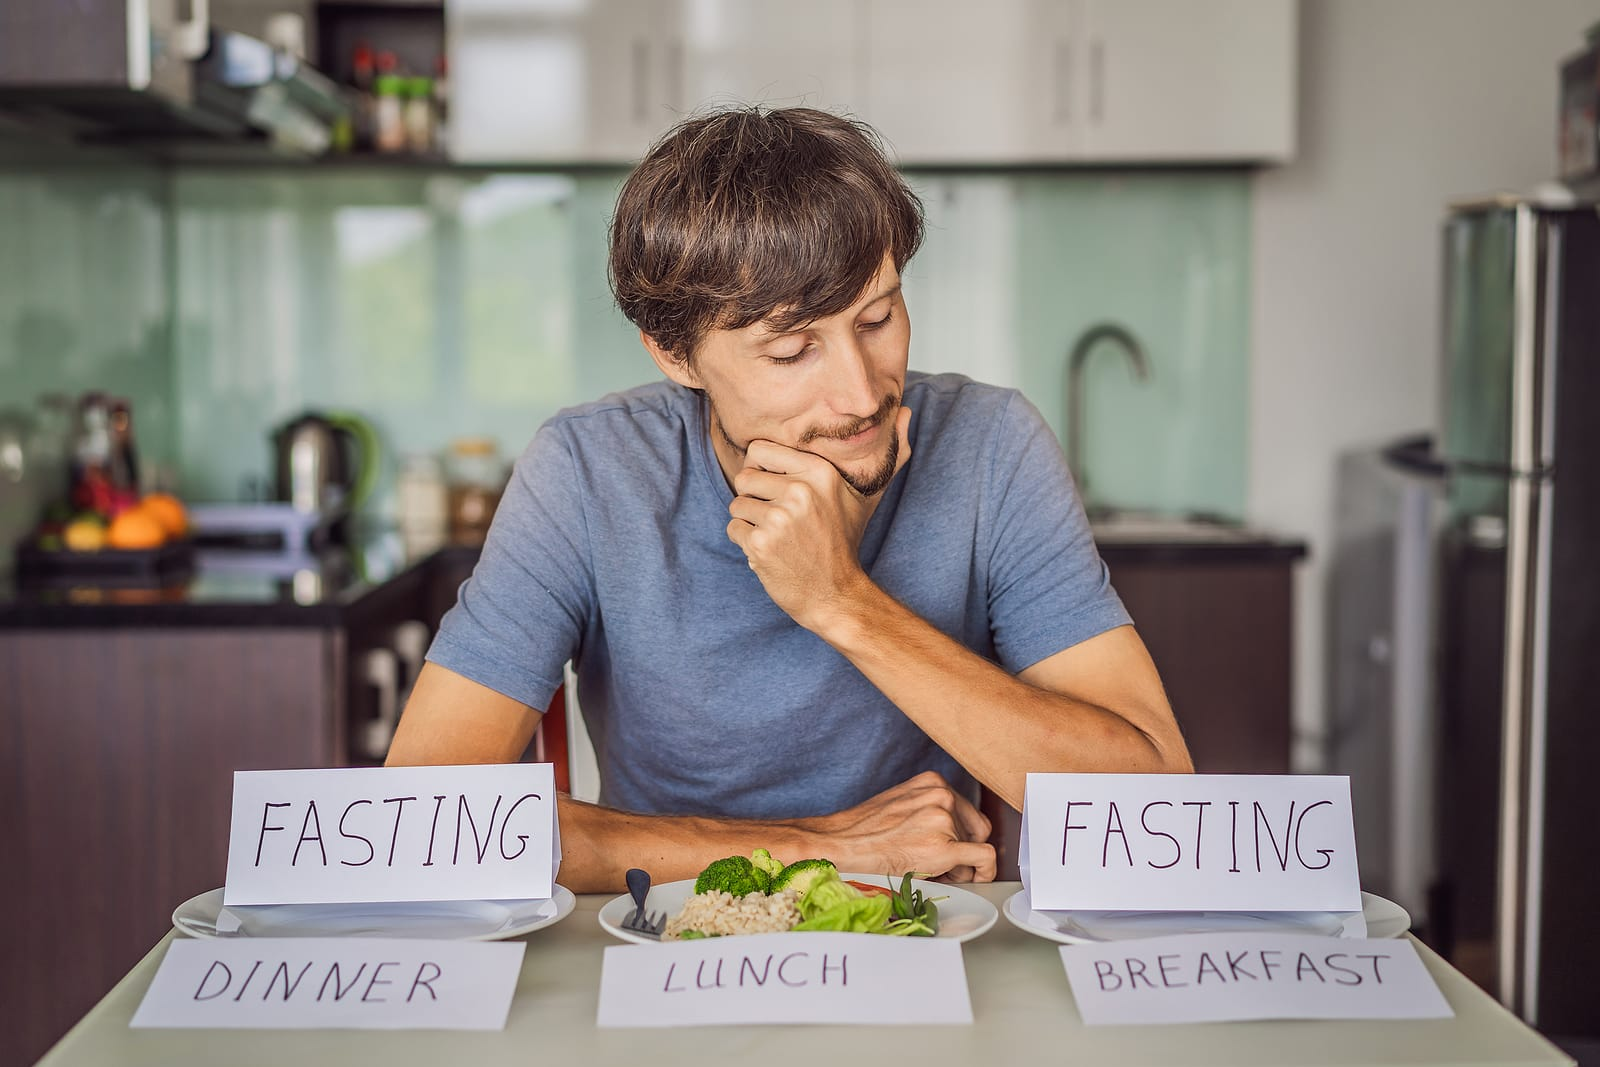 Intermittent fasting during breakfast and dinner